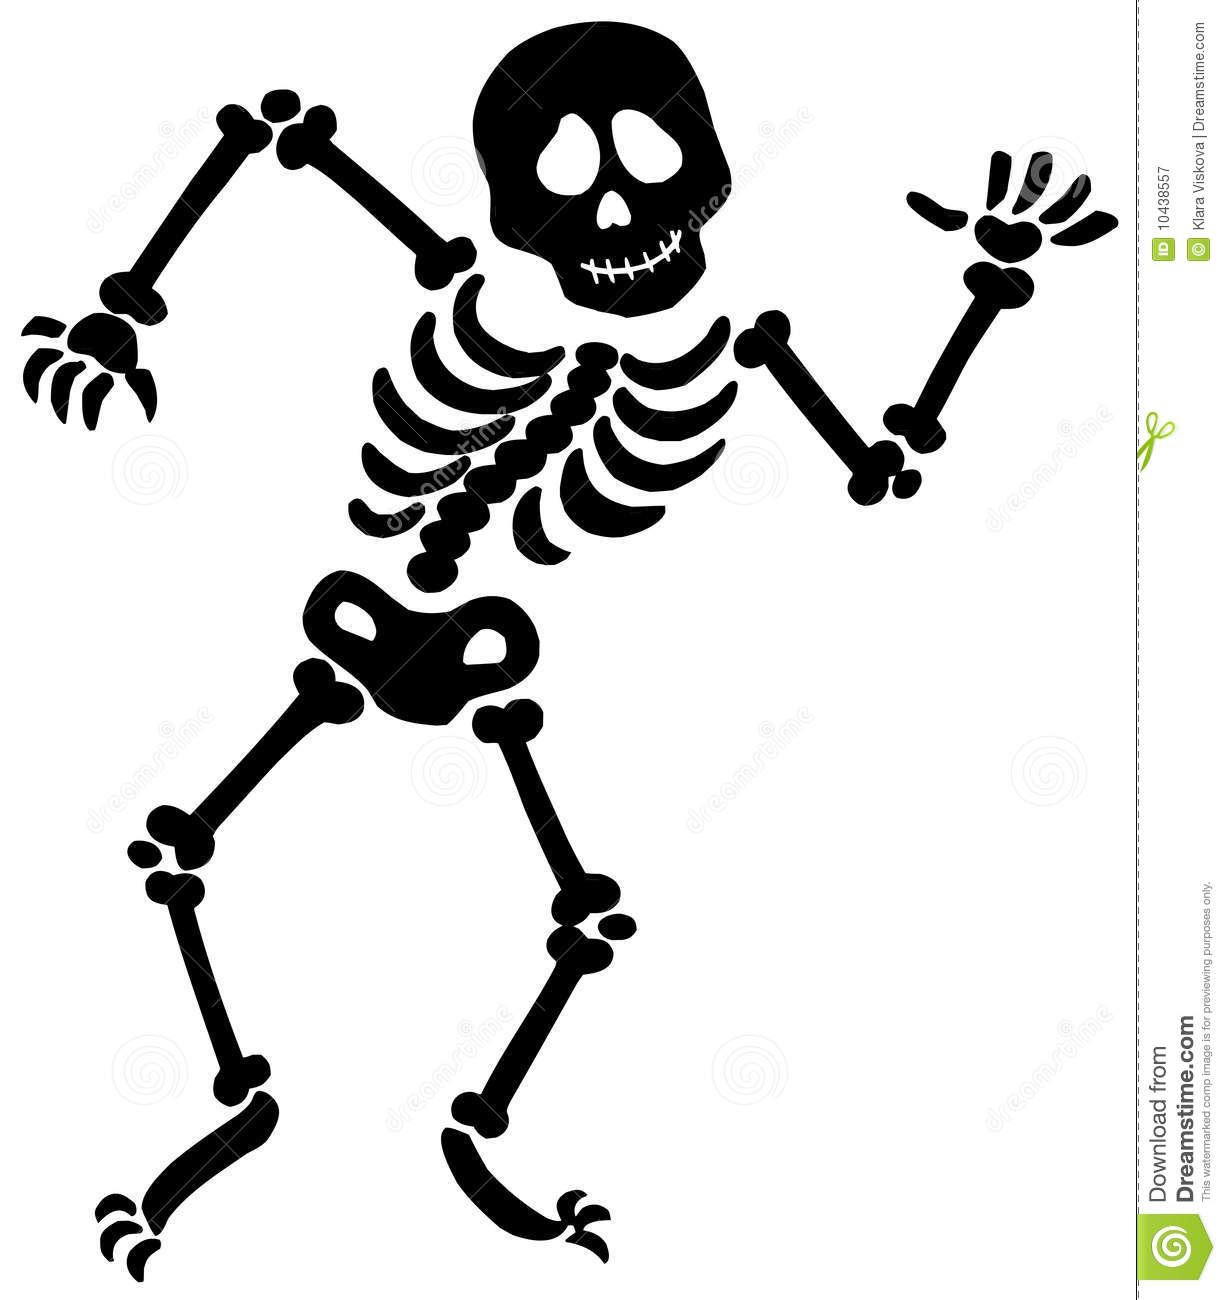 Scavenger Hunt Clip Art furthermore Stock Photos Hand Drawing Cartoon Character Happiness Happy People Image33593493 also Spiders web clip art further 313211349059168187 furthermore Royalty Free Stock Photography Dancing Skeleton Silhouette Image10438557. on scary animated for kids